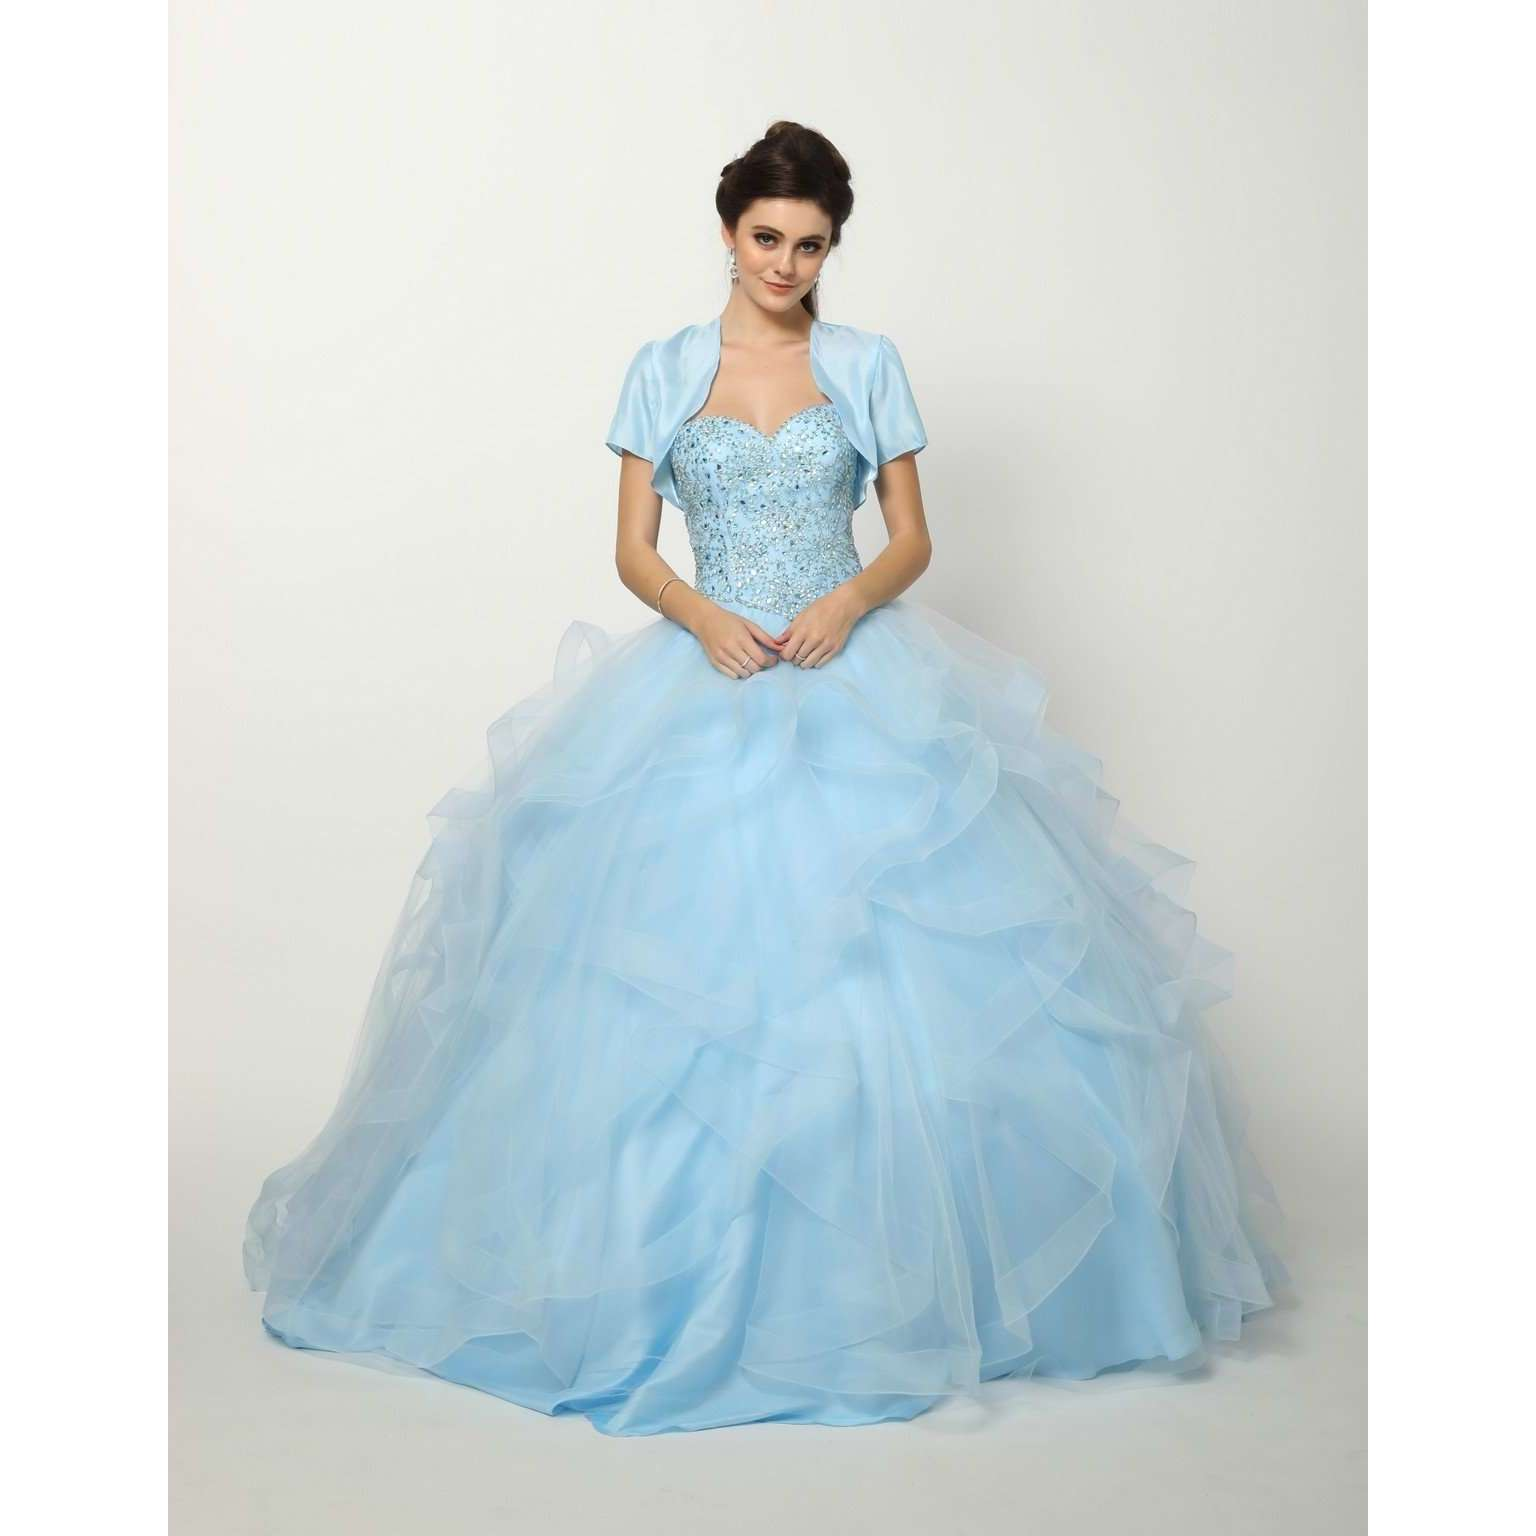 Beaded Lace Bodice on a Flounced Tulle Ball Gown with Detachable Sleeves 1425 - Julietdresses